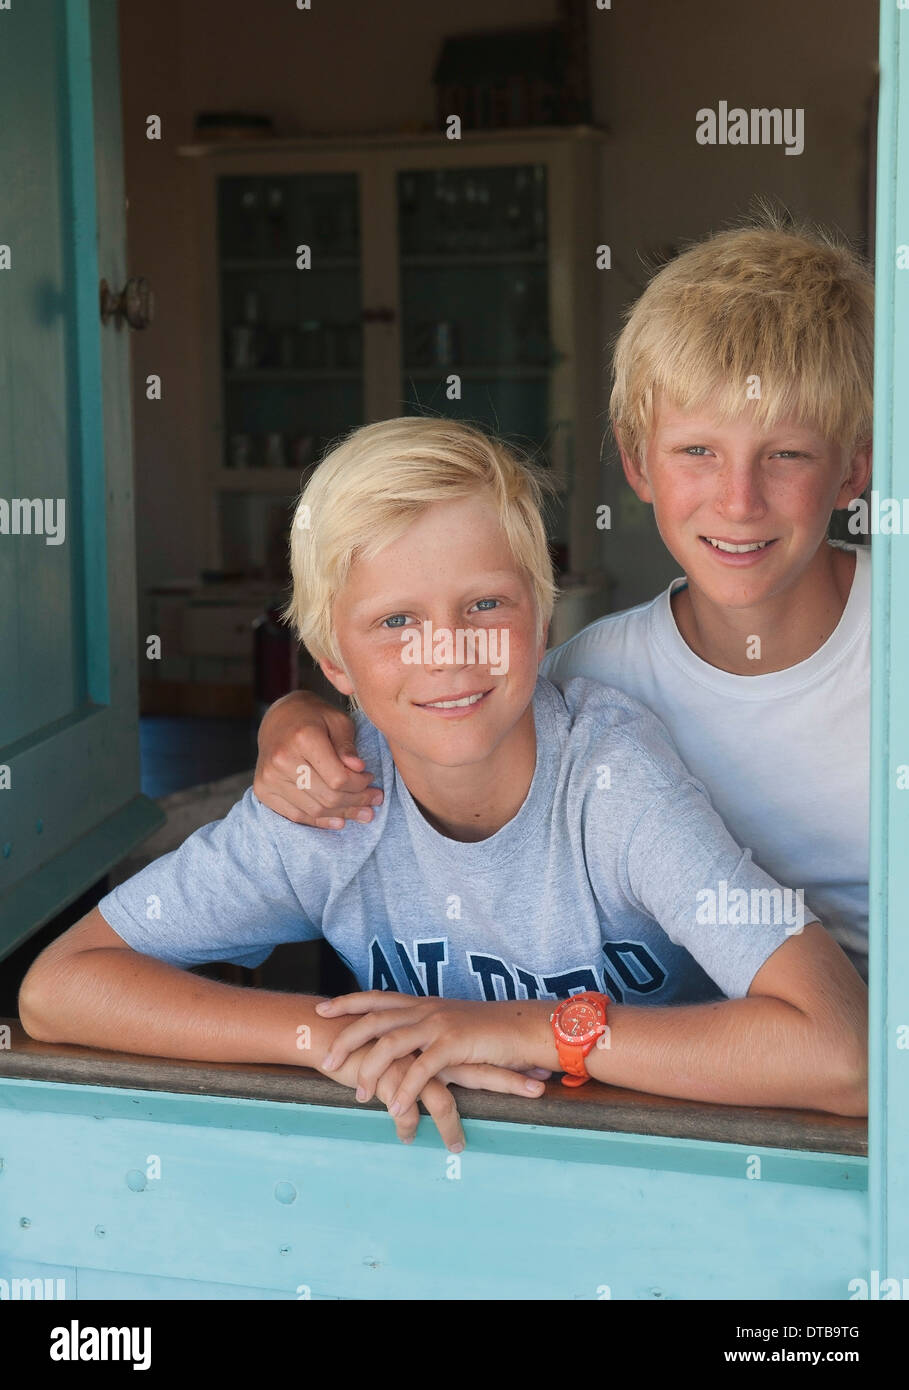 Portrait of two happy blonde brothers, Churchhaven, Western Cape, South Africa - Stock Image